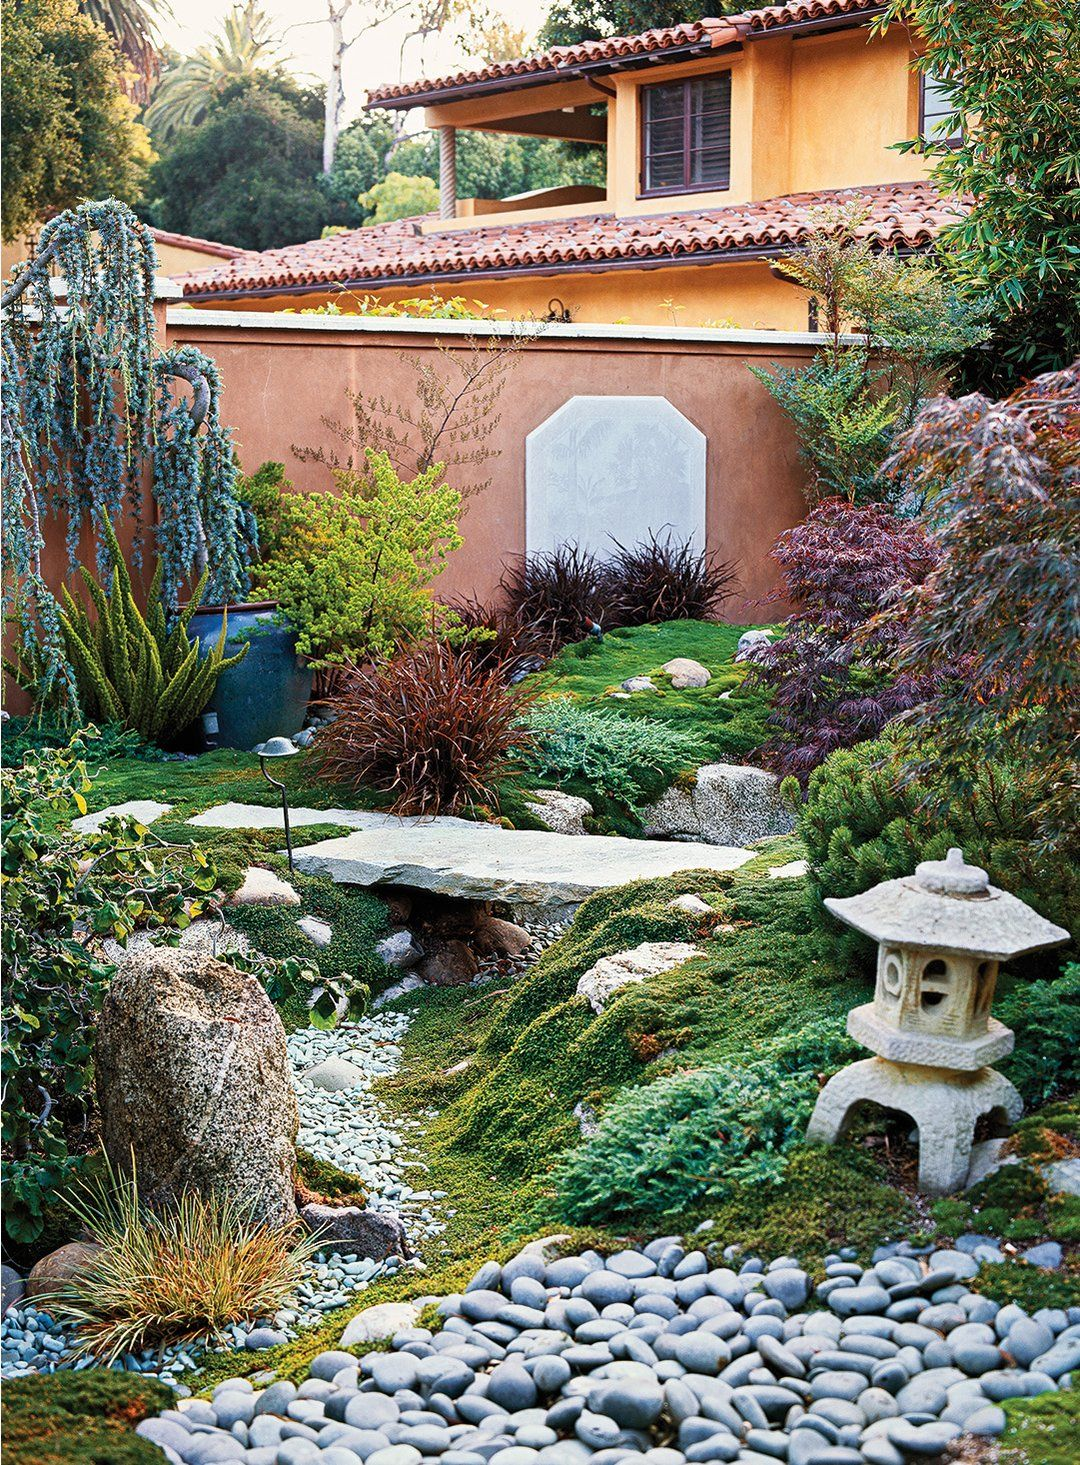 Update Your Garden With This Diy Dry Creek Bed Landscape Plans Landscaping With Rocks Landscape Design